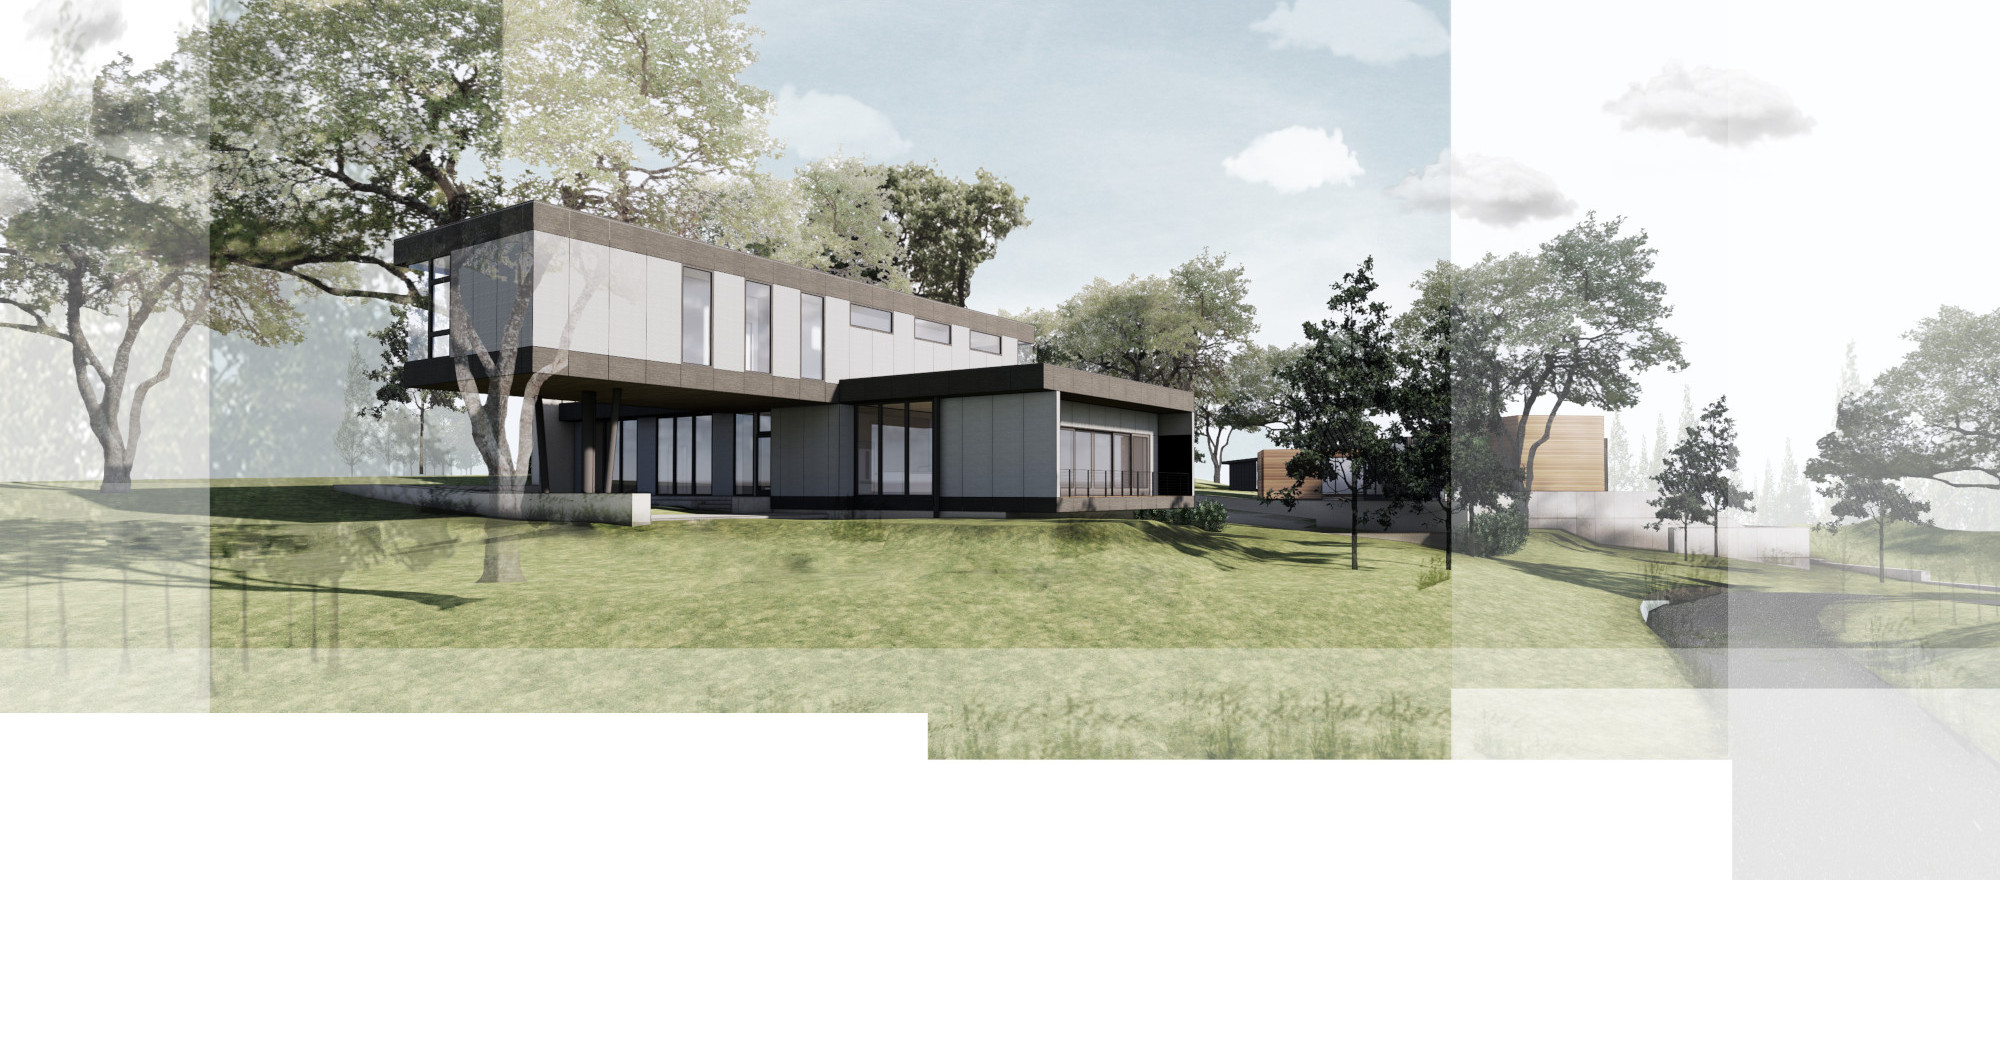 rendering of the Warbler property